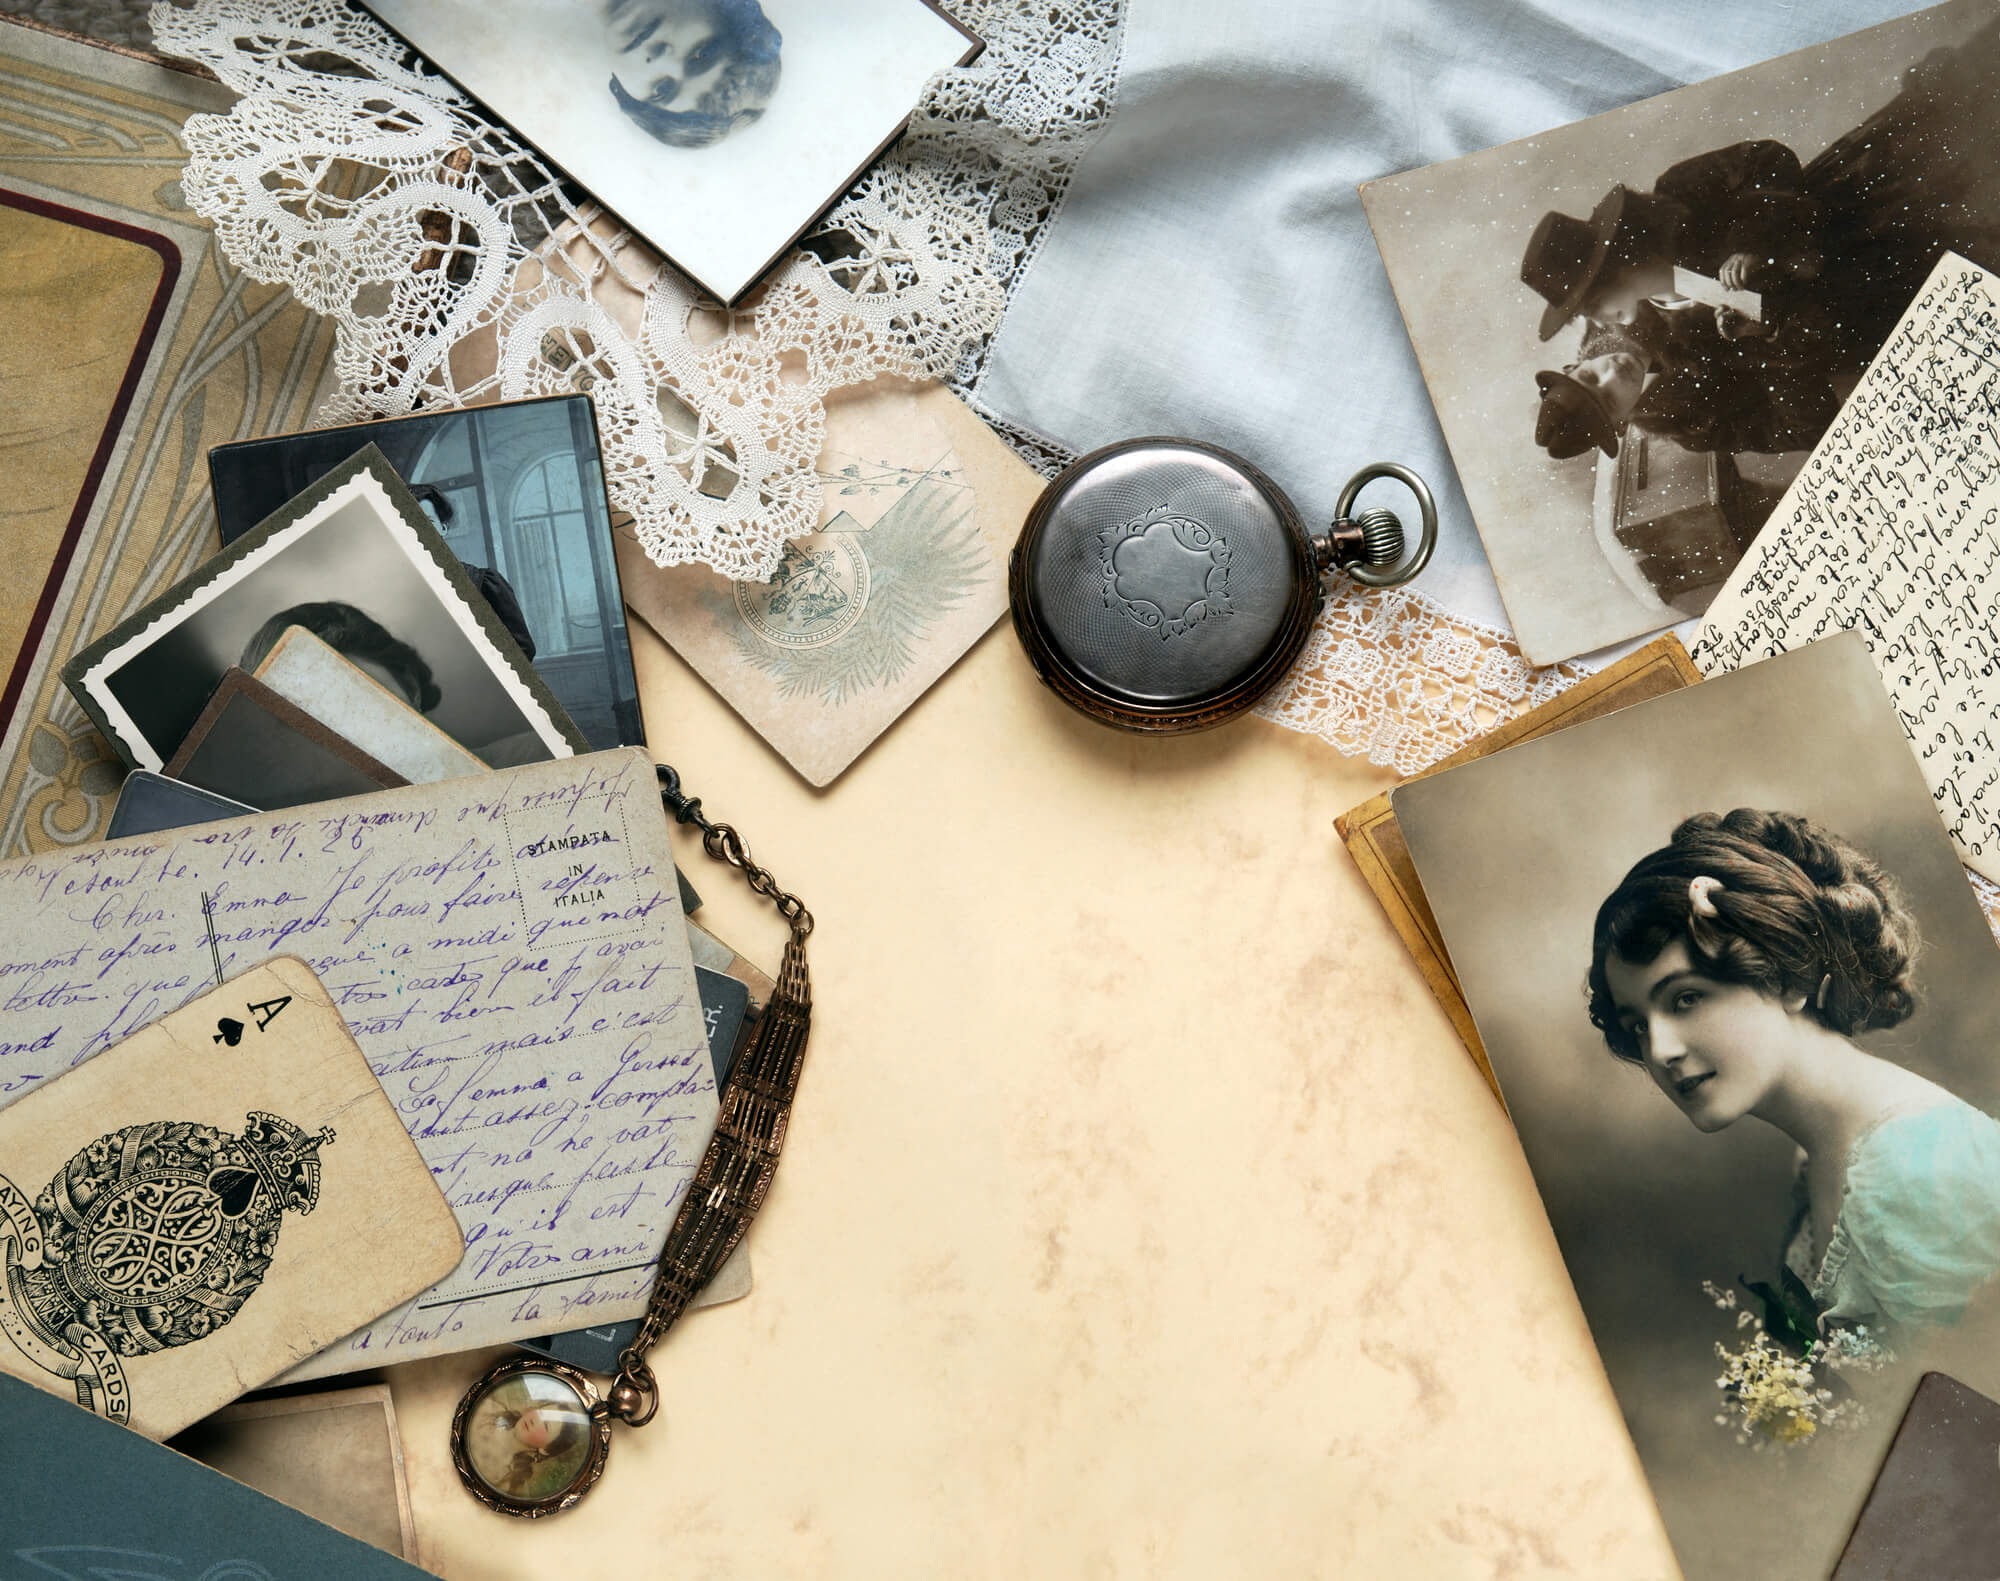 Letters, postcards, pictures, locket, and pocket watch with sentimental attachments